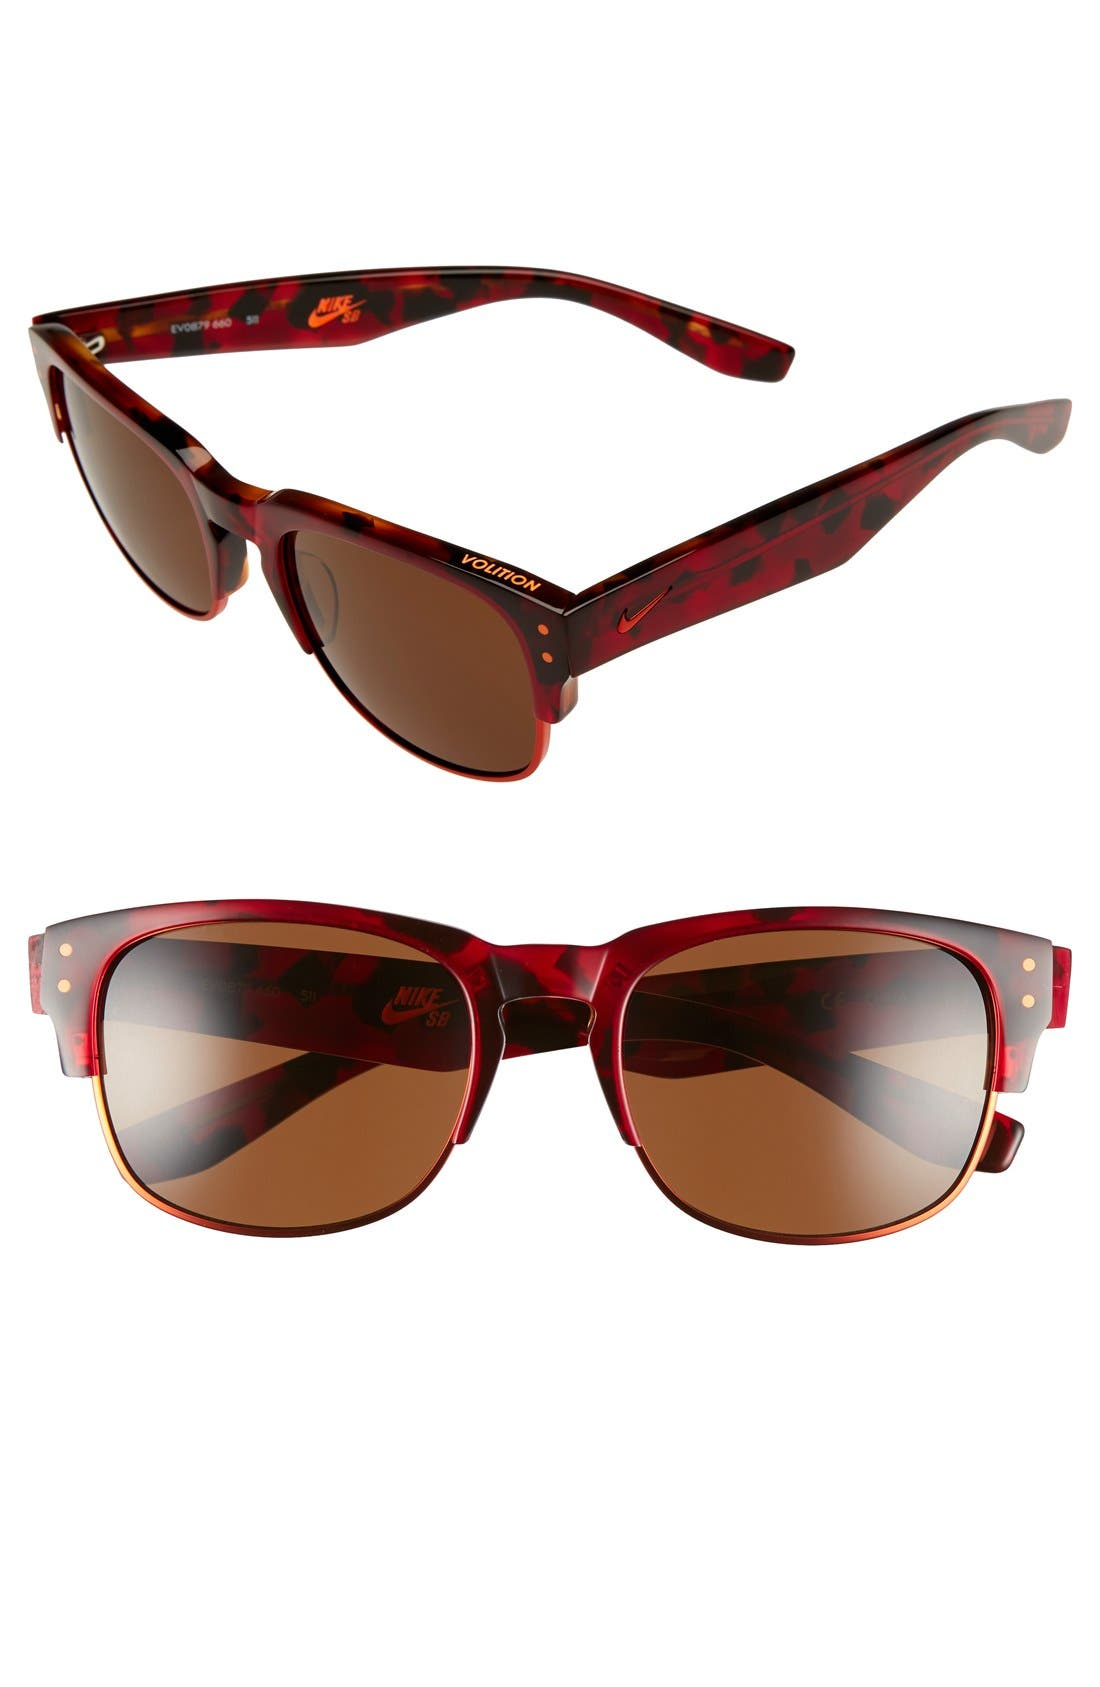 VOLITION 54MM SUNGLASSES - RED TORTOISE